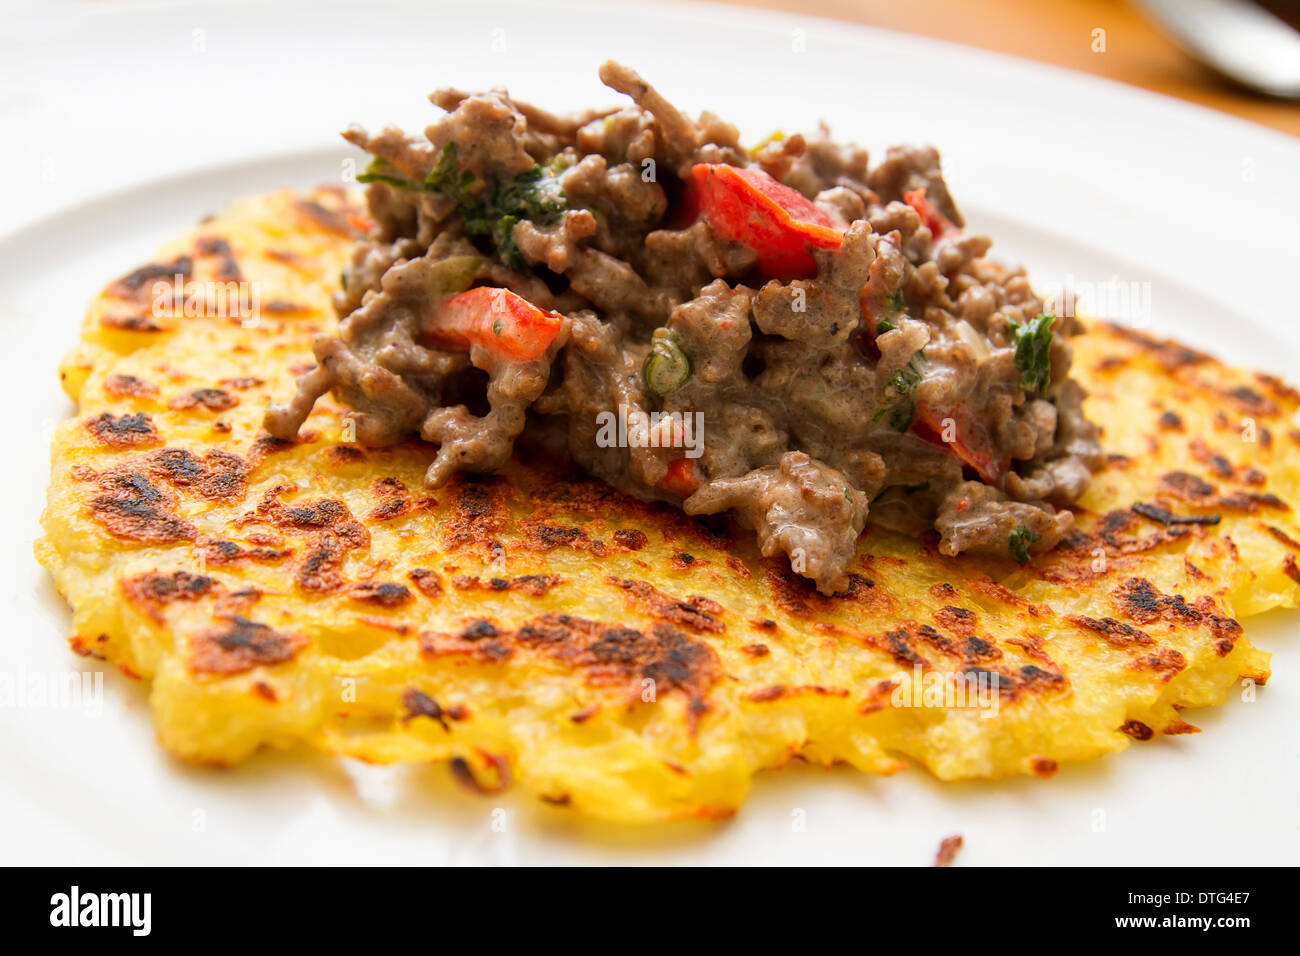 potato fritter with meat sauce Stock Photo